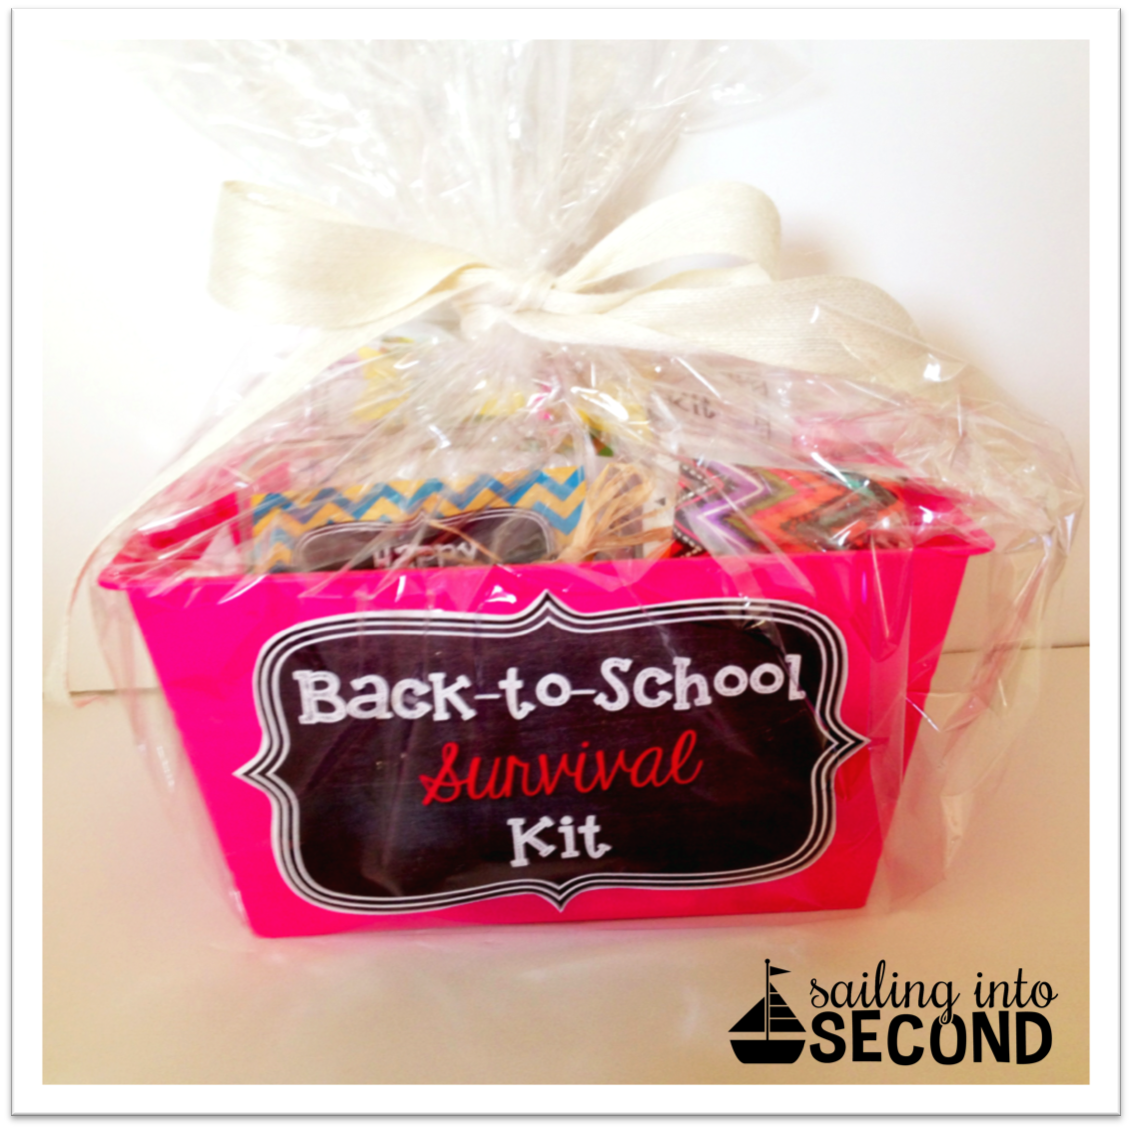 Back-to-School Survival Kit, sailing into second, blog